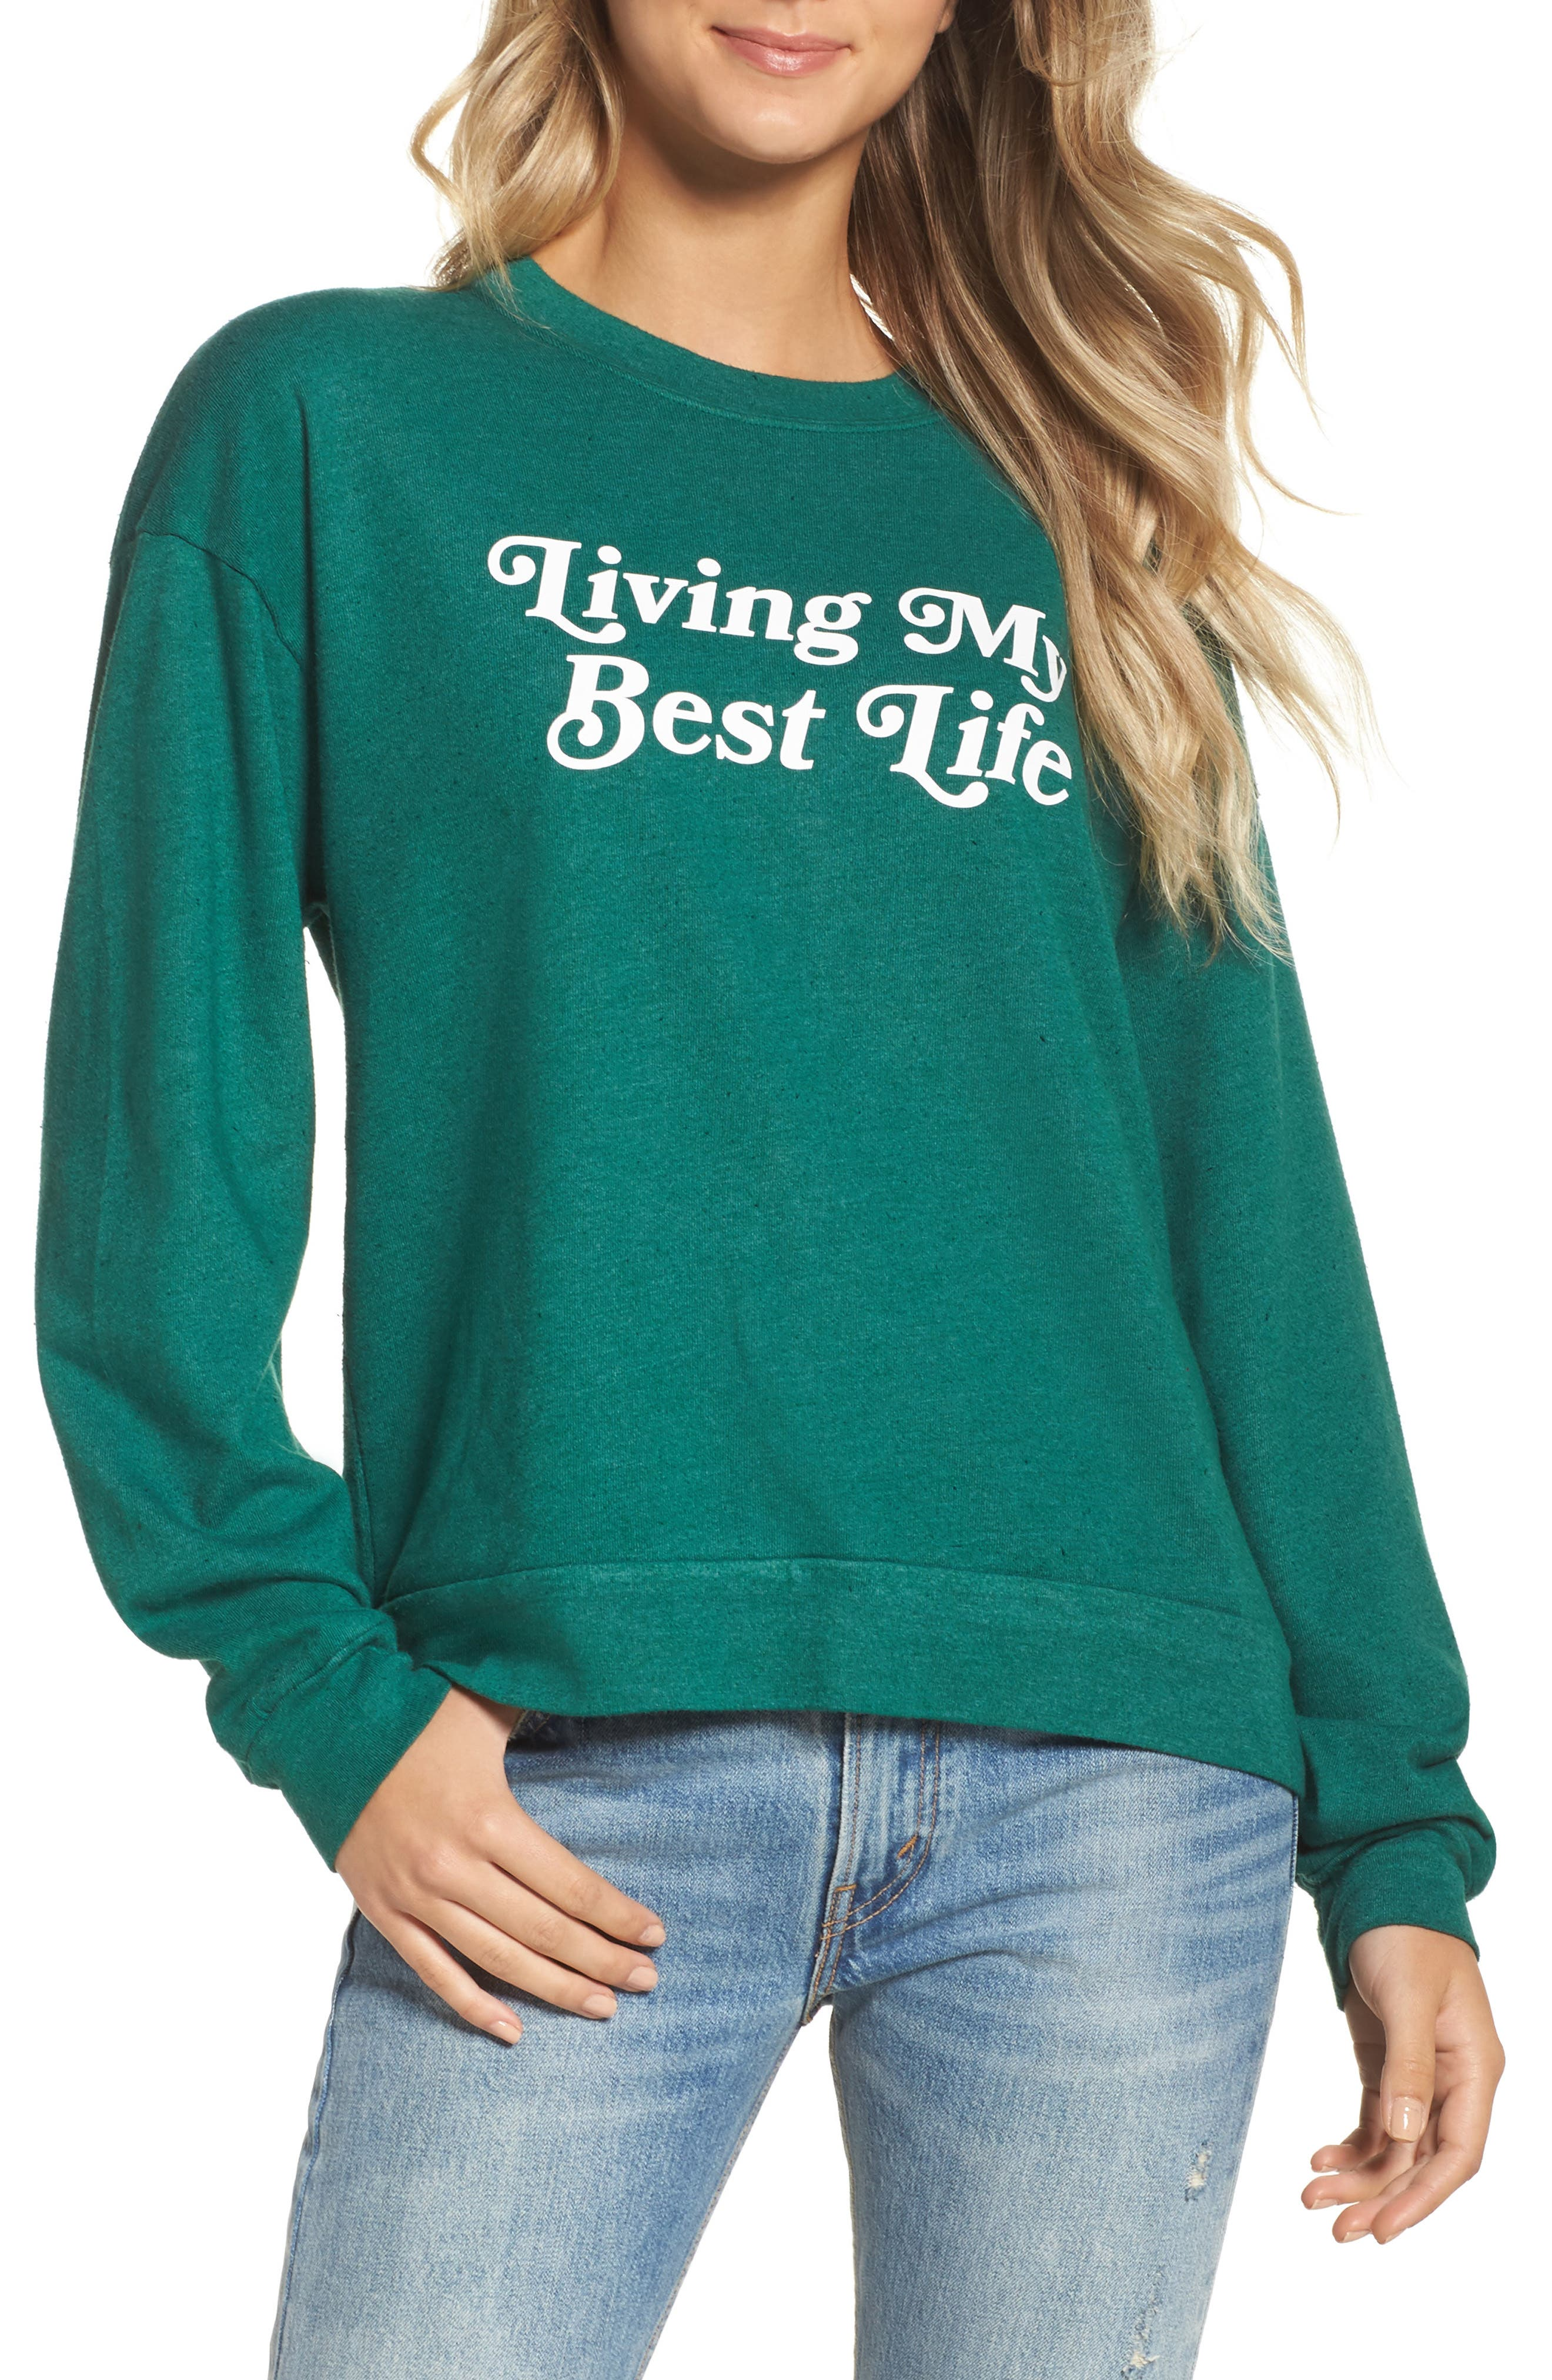 Private Party Living My Best Life Sweatshirt